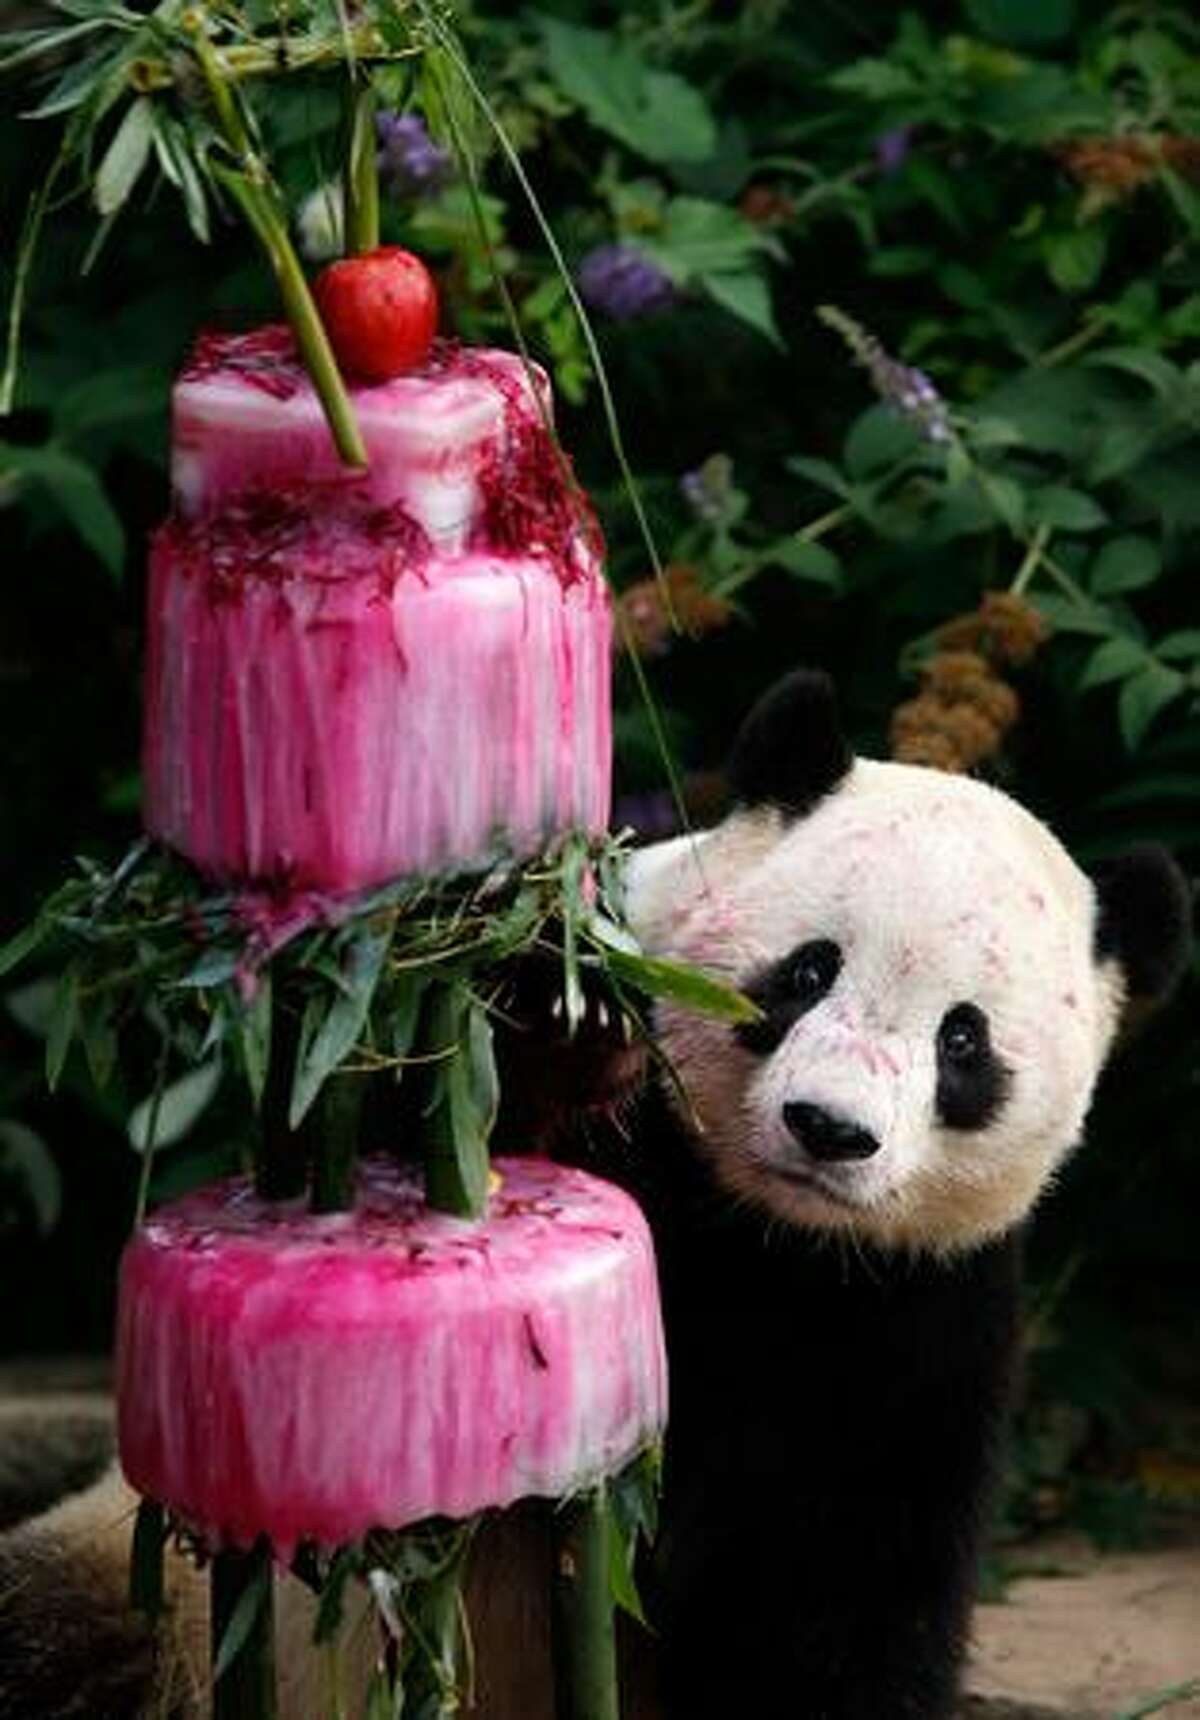 Giant panda Tai Shan checks out his birthday cake at the National Zoo in Washington, DC. The zoo held an event to celebrate the panda's fourth birthday with a frozen cake made from water, bamboo, shredded beets and beet juice.